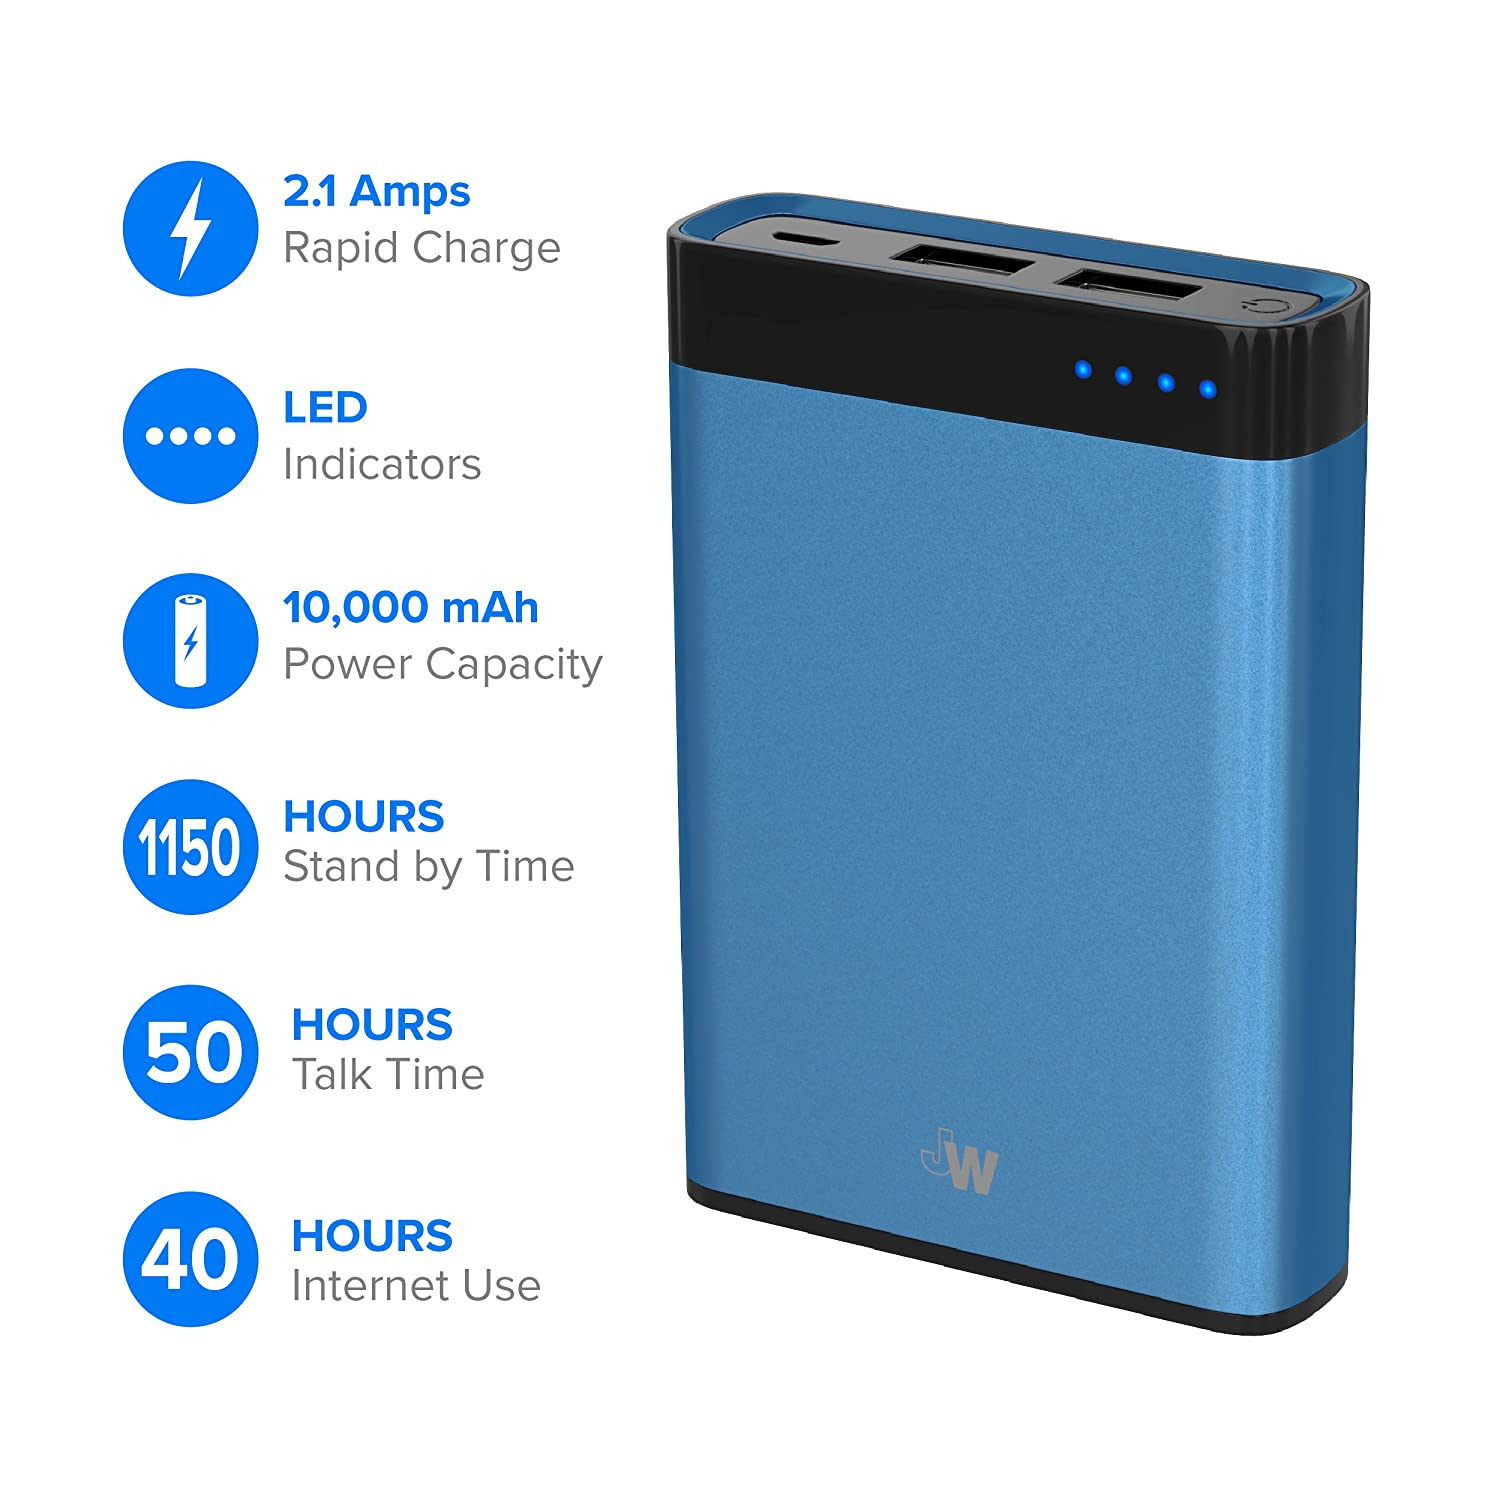 Just Wireless Portable Charger Power Bank External Battery Pack 10,000mAh Phone Charger for Apple iPhone Including XS, XS Max, XR, X, 8, 8 Plus, iPad, ...